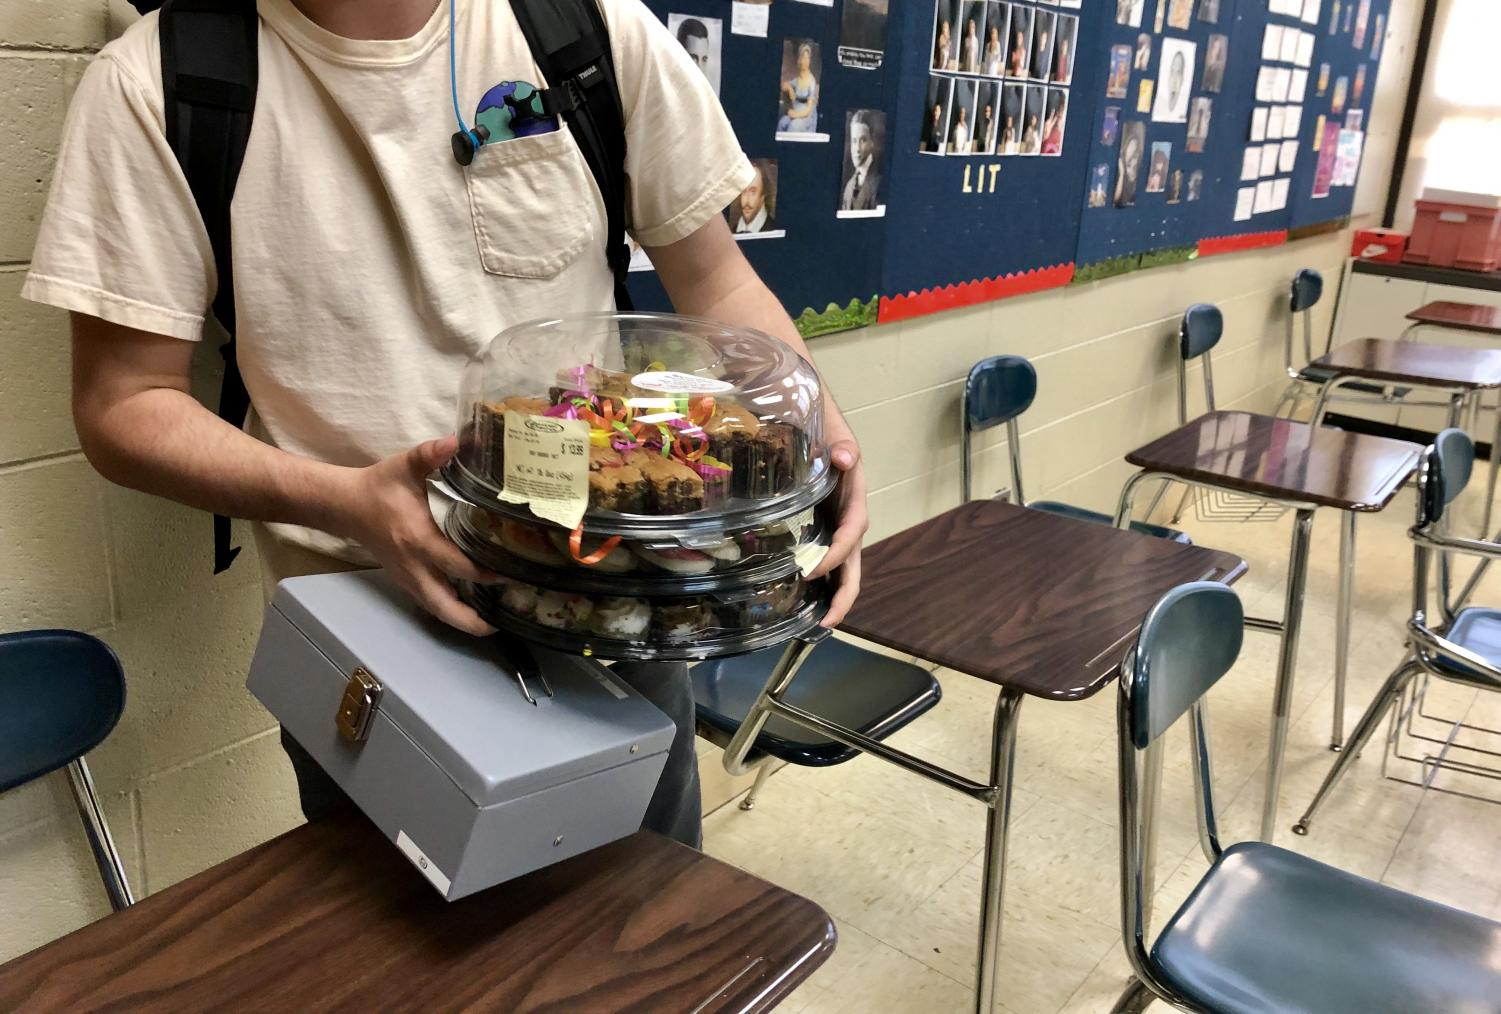 Alek Malone, senior and Ecology Club co-president, sold pastries during class to raise money for Ecology Club.  Raised funds go towards materials and supplies for the school garden.